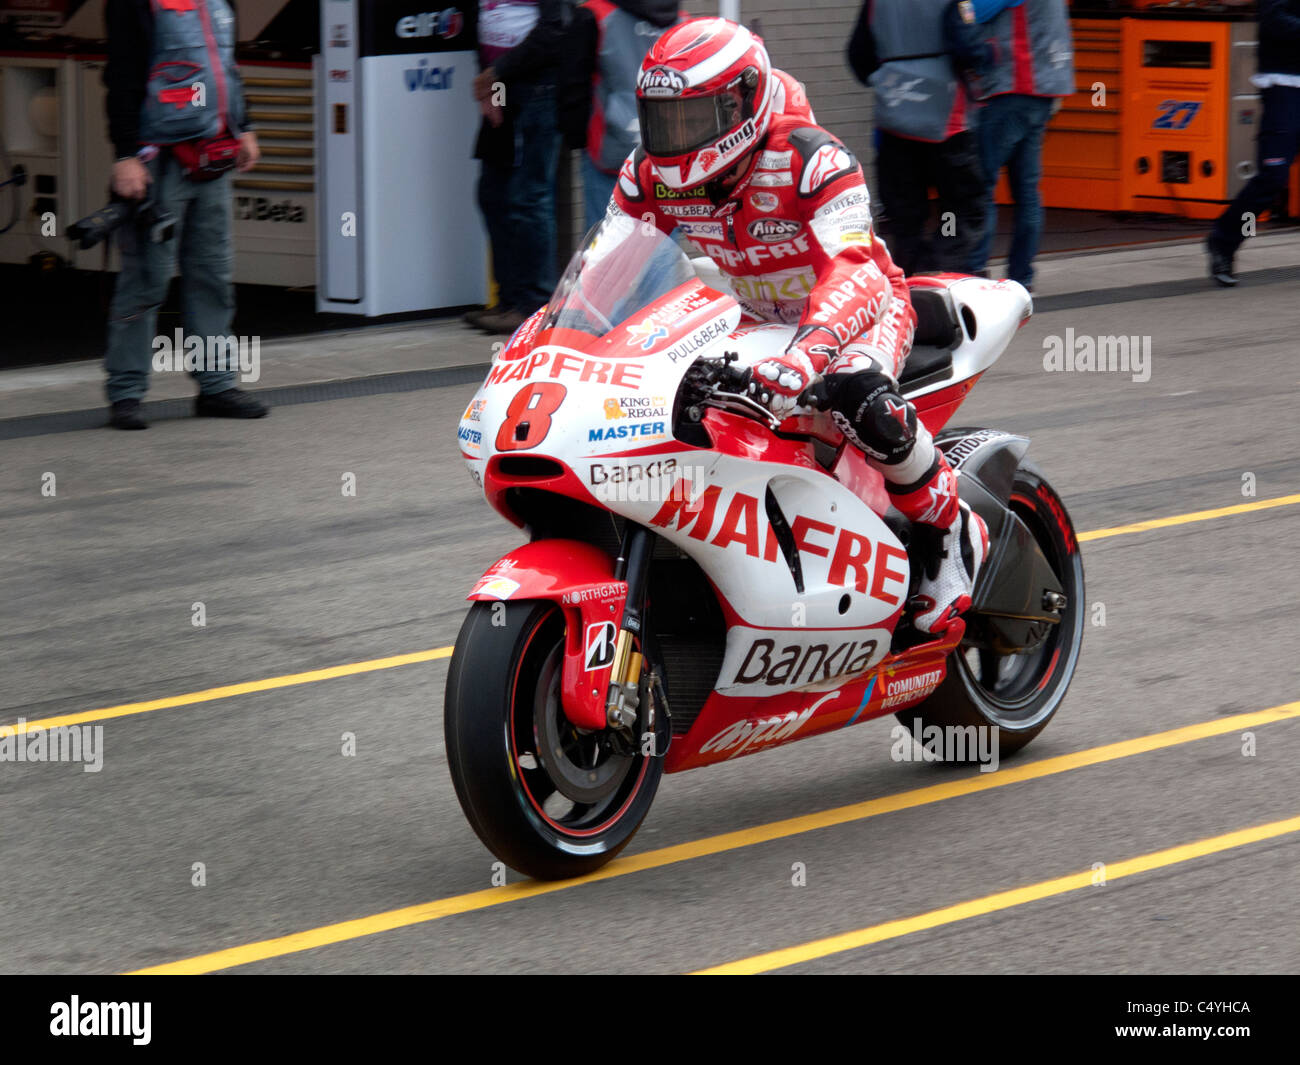 Garry McCoy in the pit lane Assen Moto GP 2011 - Stock Image